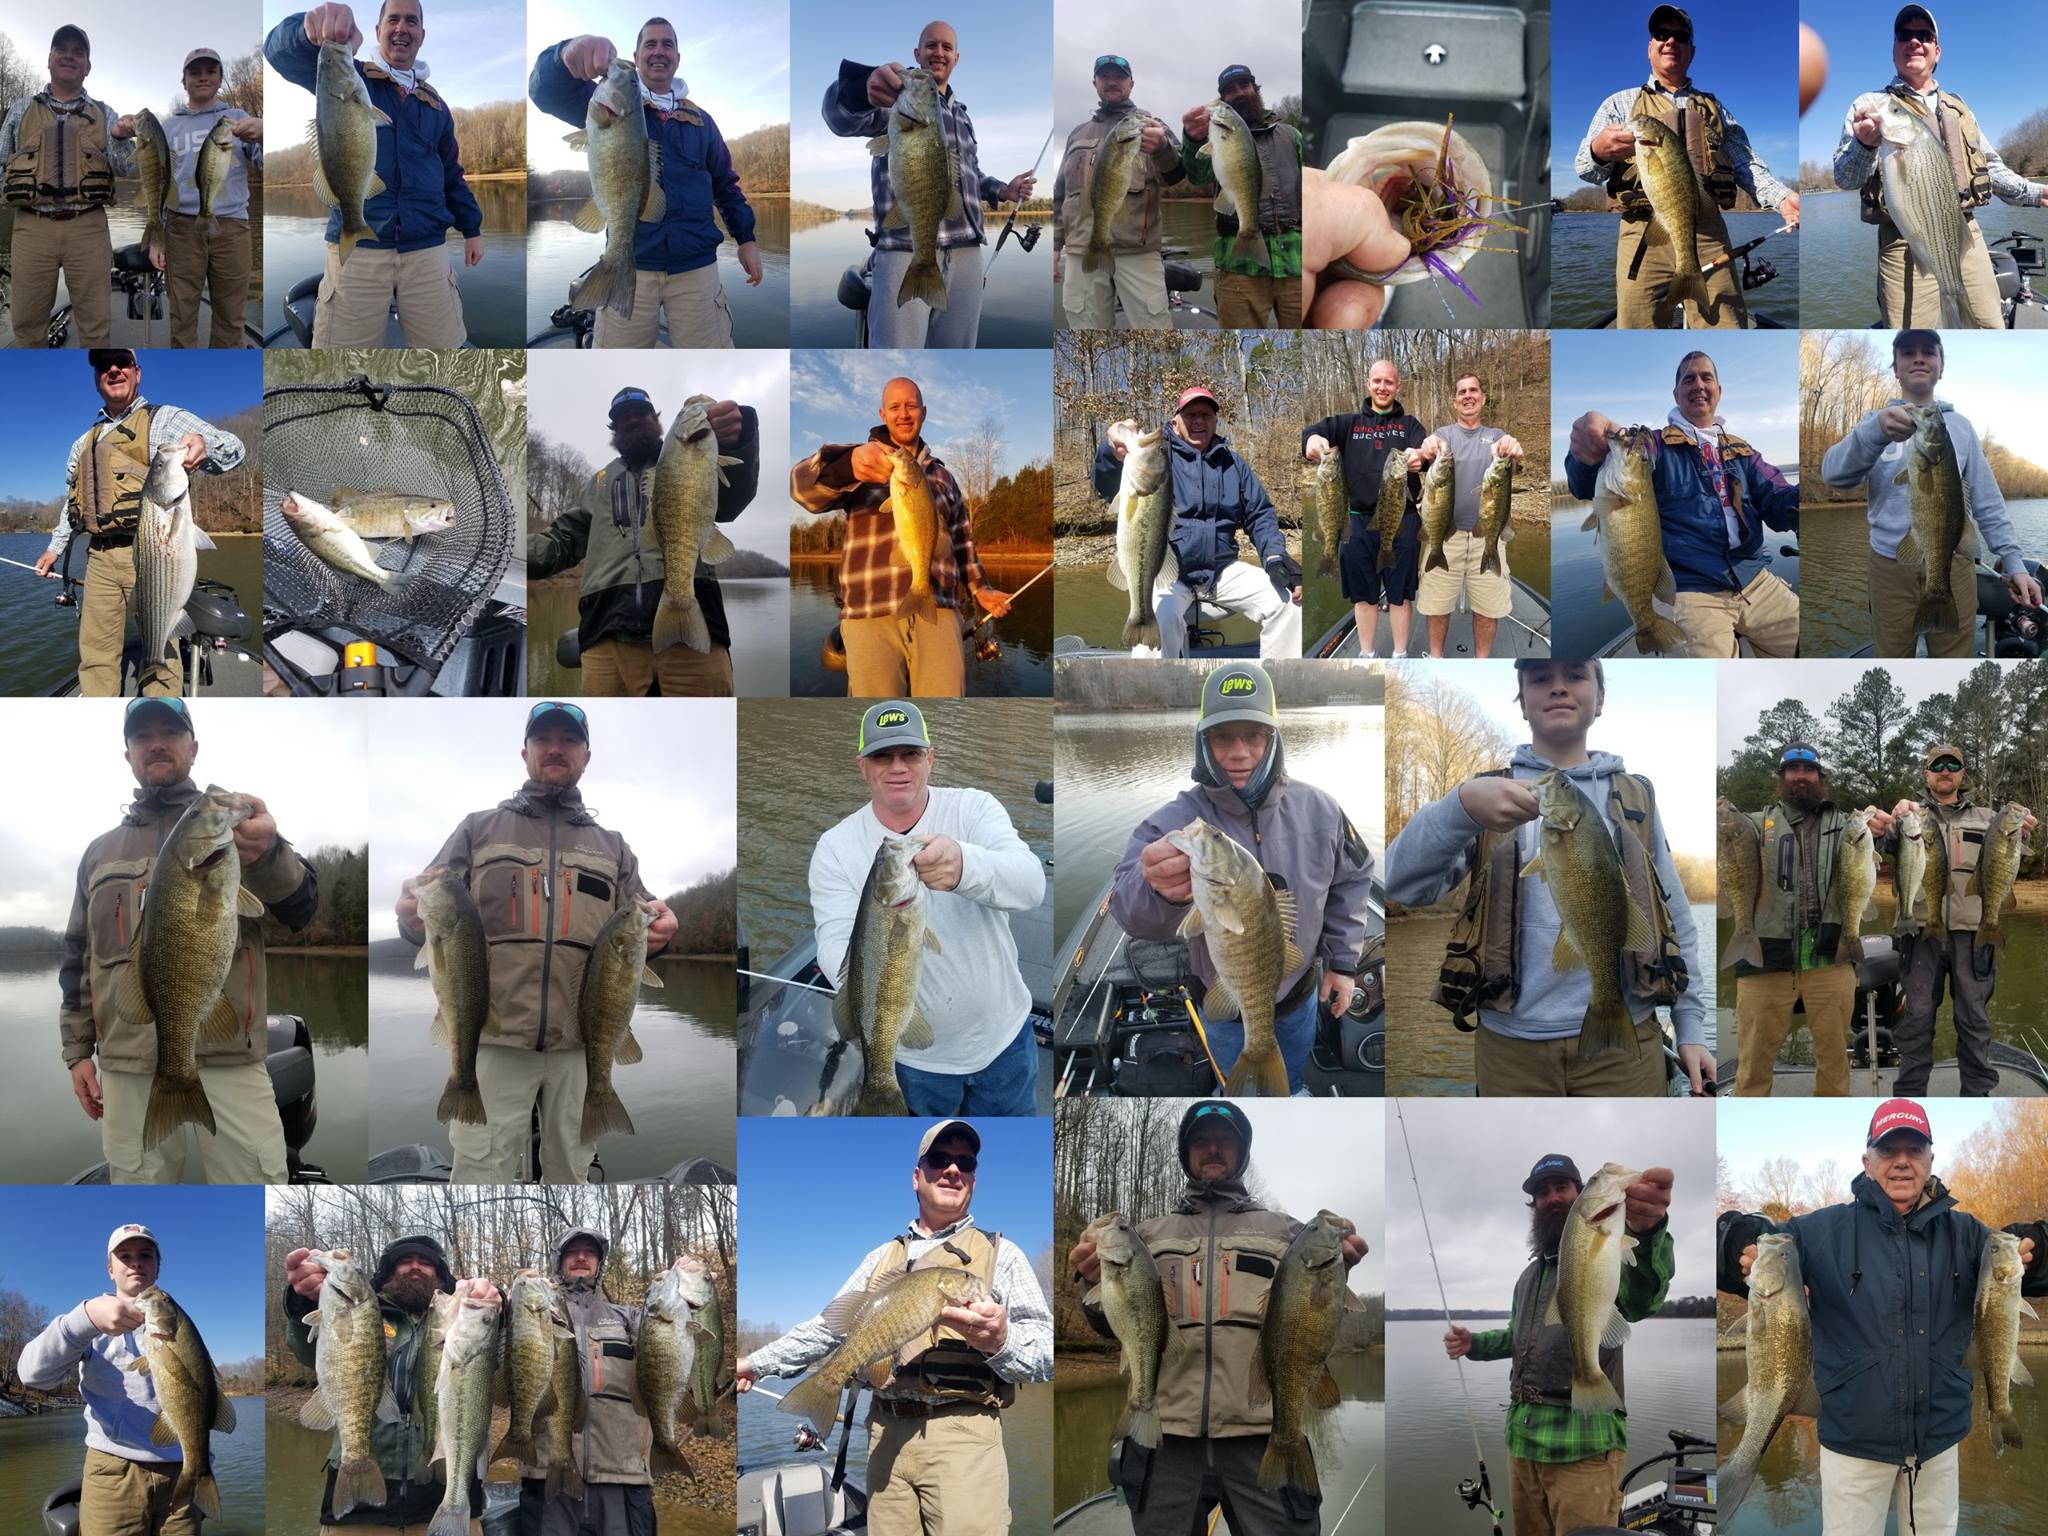 Tim s ford fishing report 20 mar 2018 for Tims ford lake fishing report